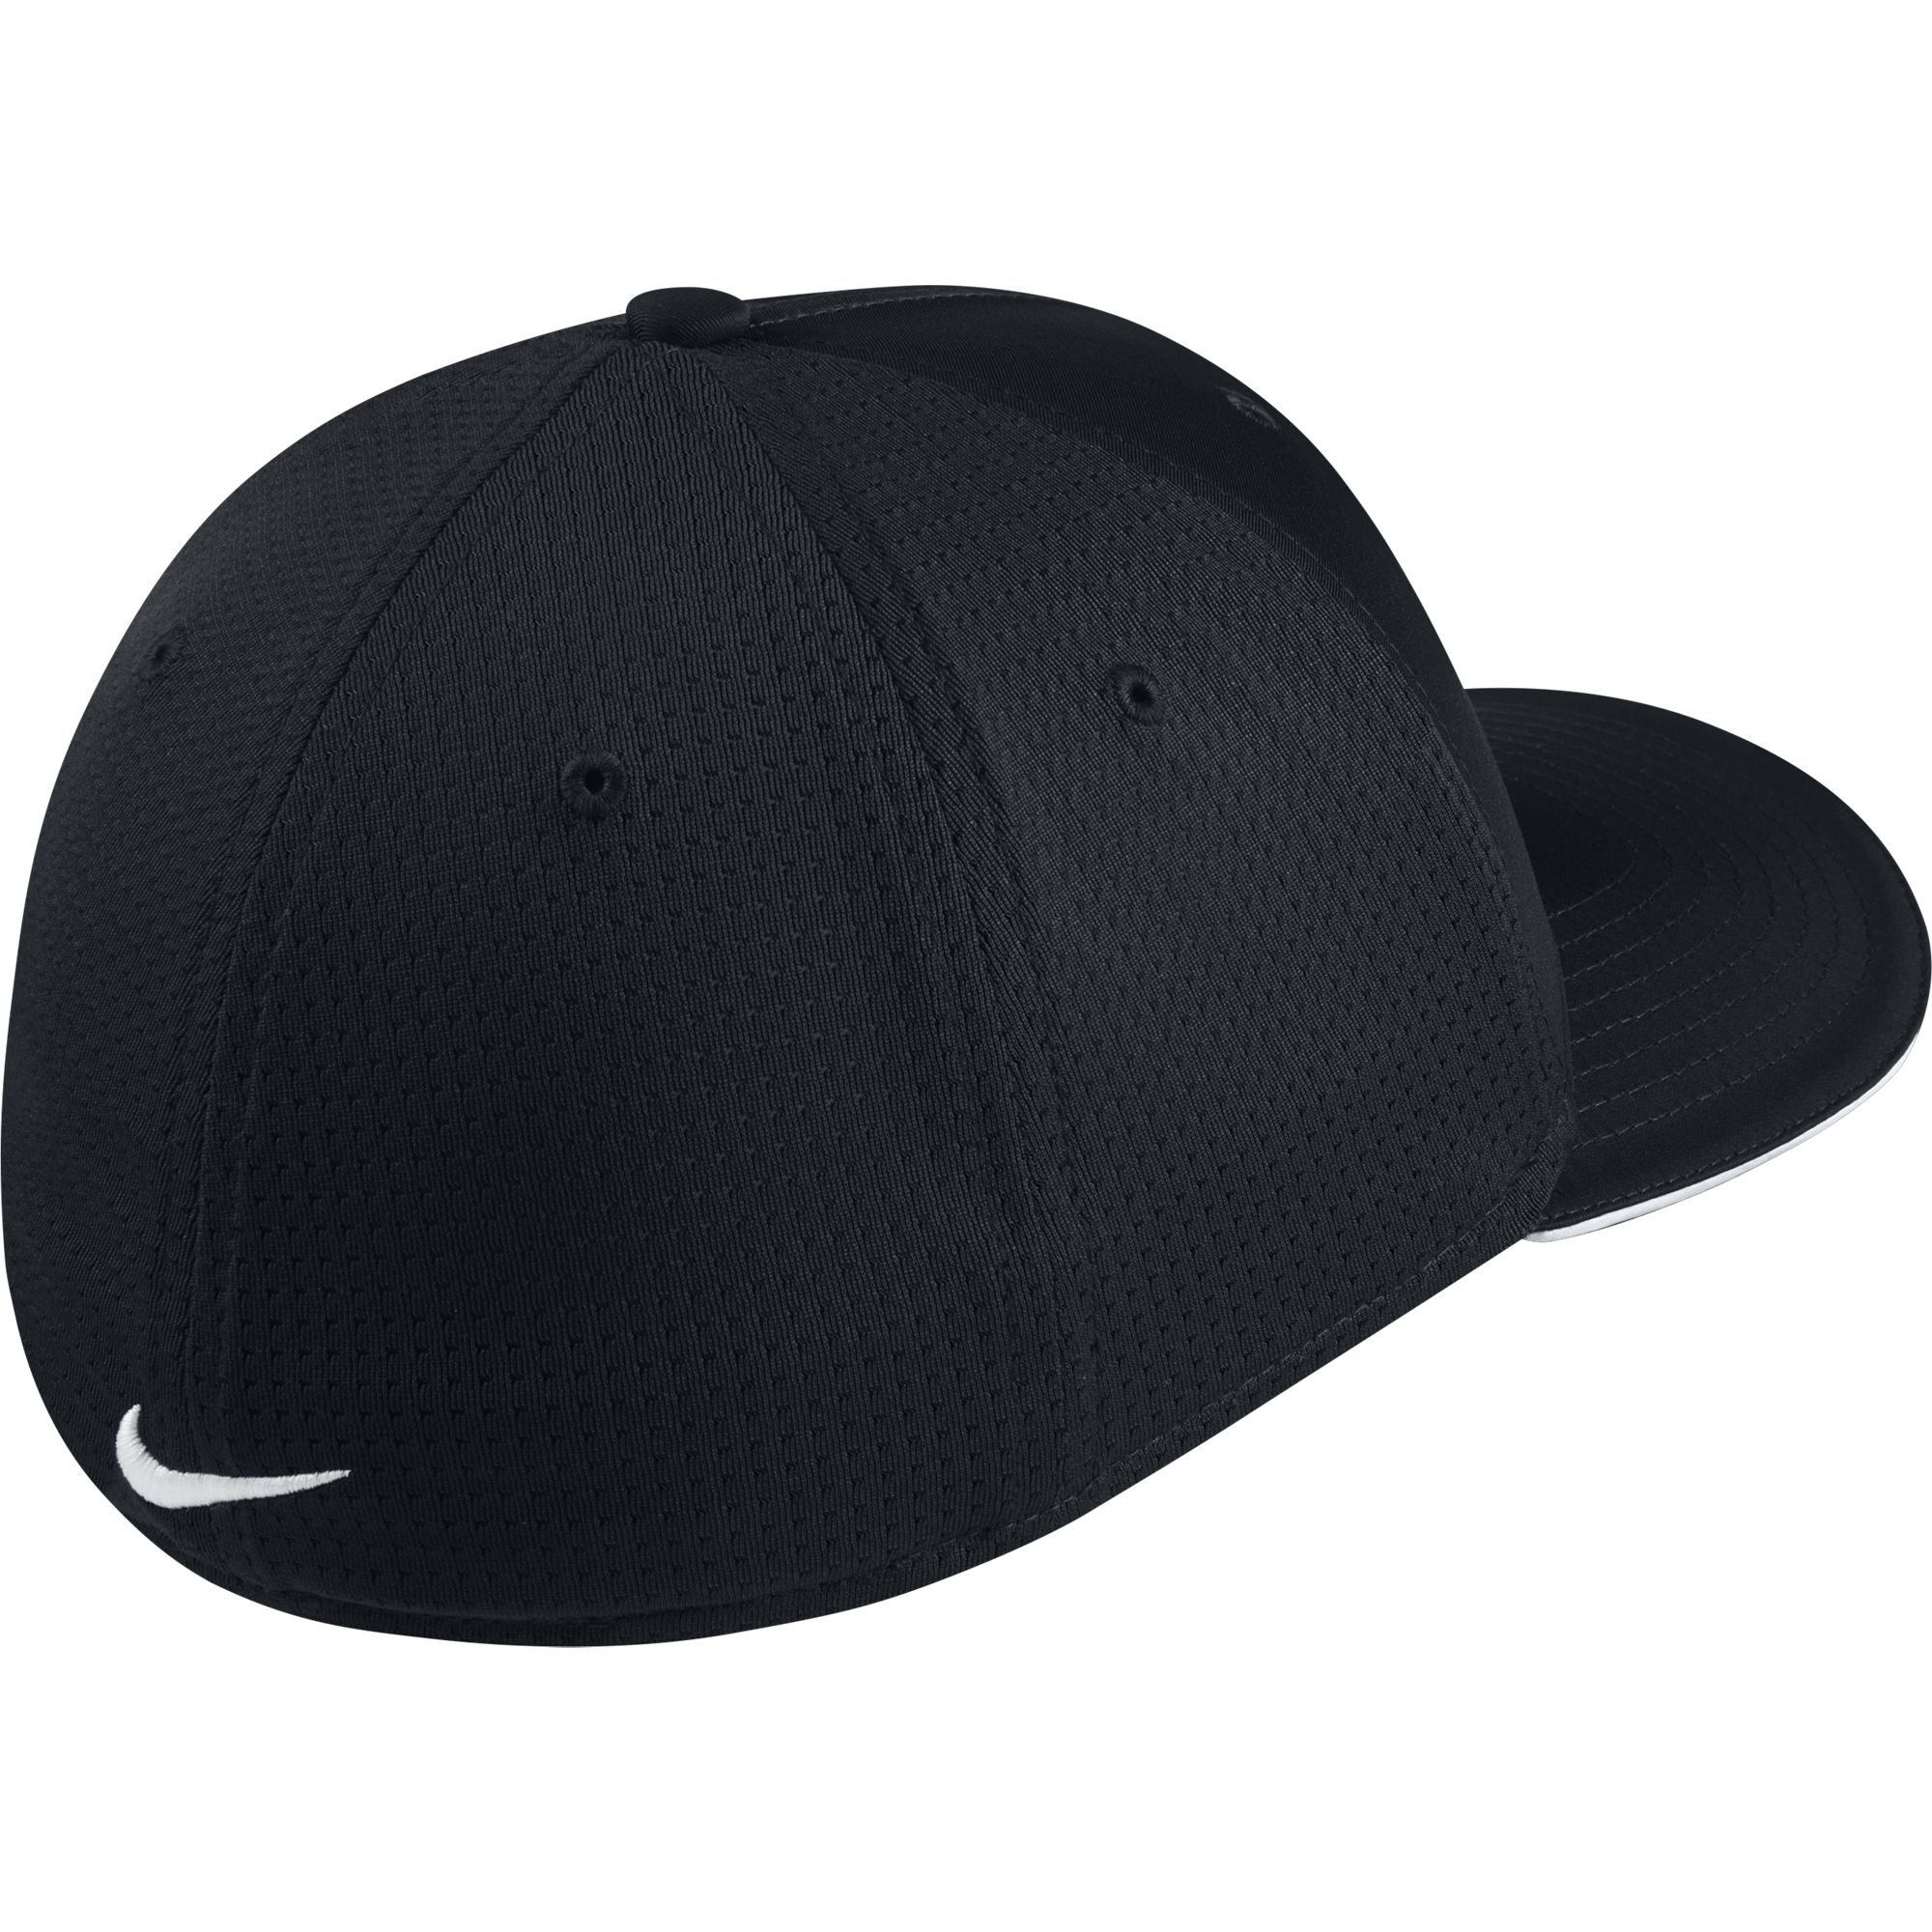 74074b31d47 Nike Golf 2017 Classic 99 Mesh Fitted Cap Hat 848052 - Pick Color ...